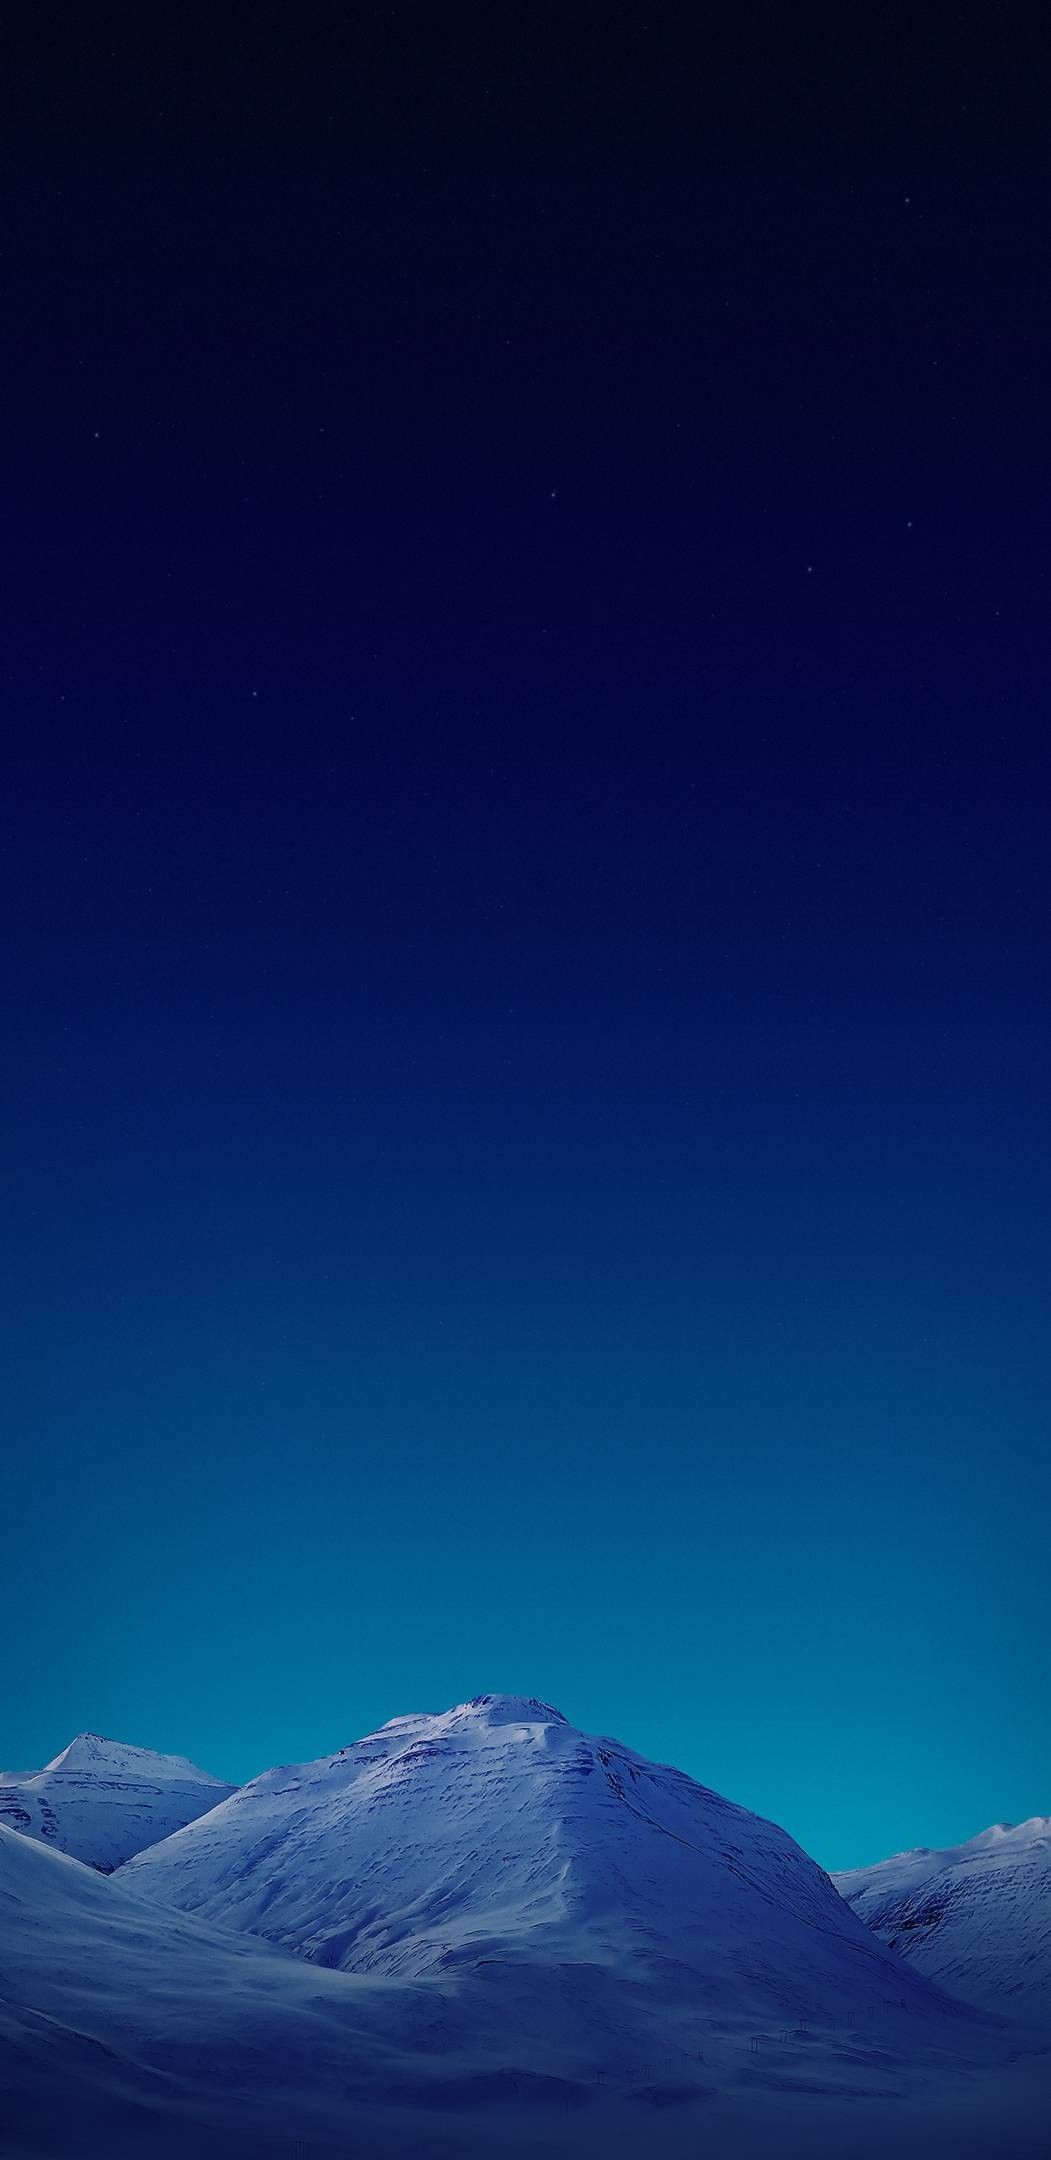 Night, sky, blue, mountain, wallpaper, clean, galaxy, colour, abstract, digital art, s8, walls, Samsung, galaxy s8